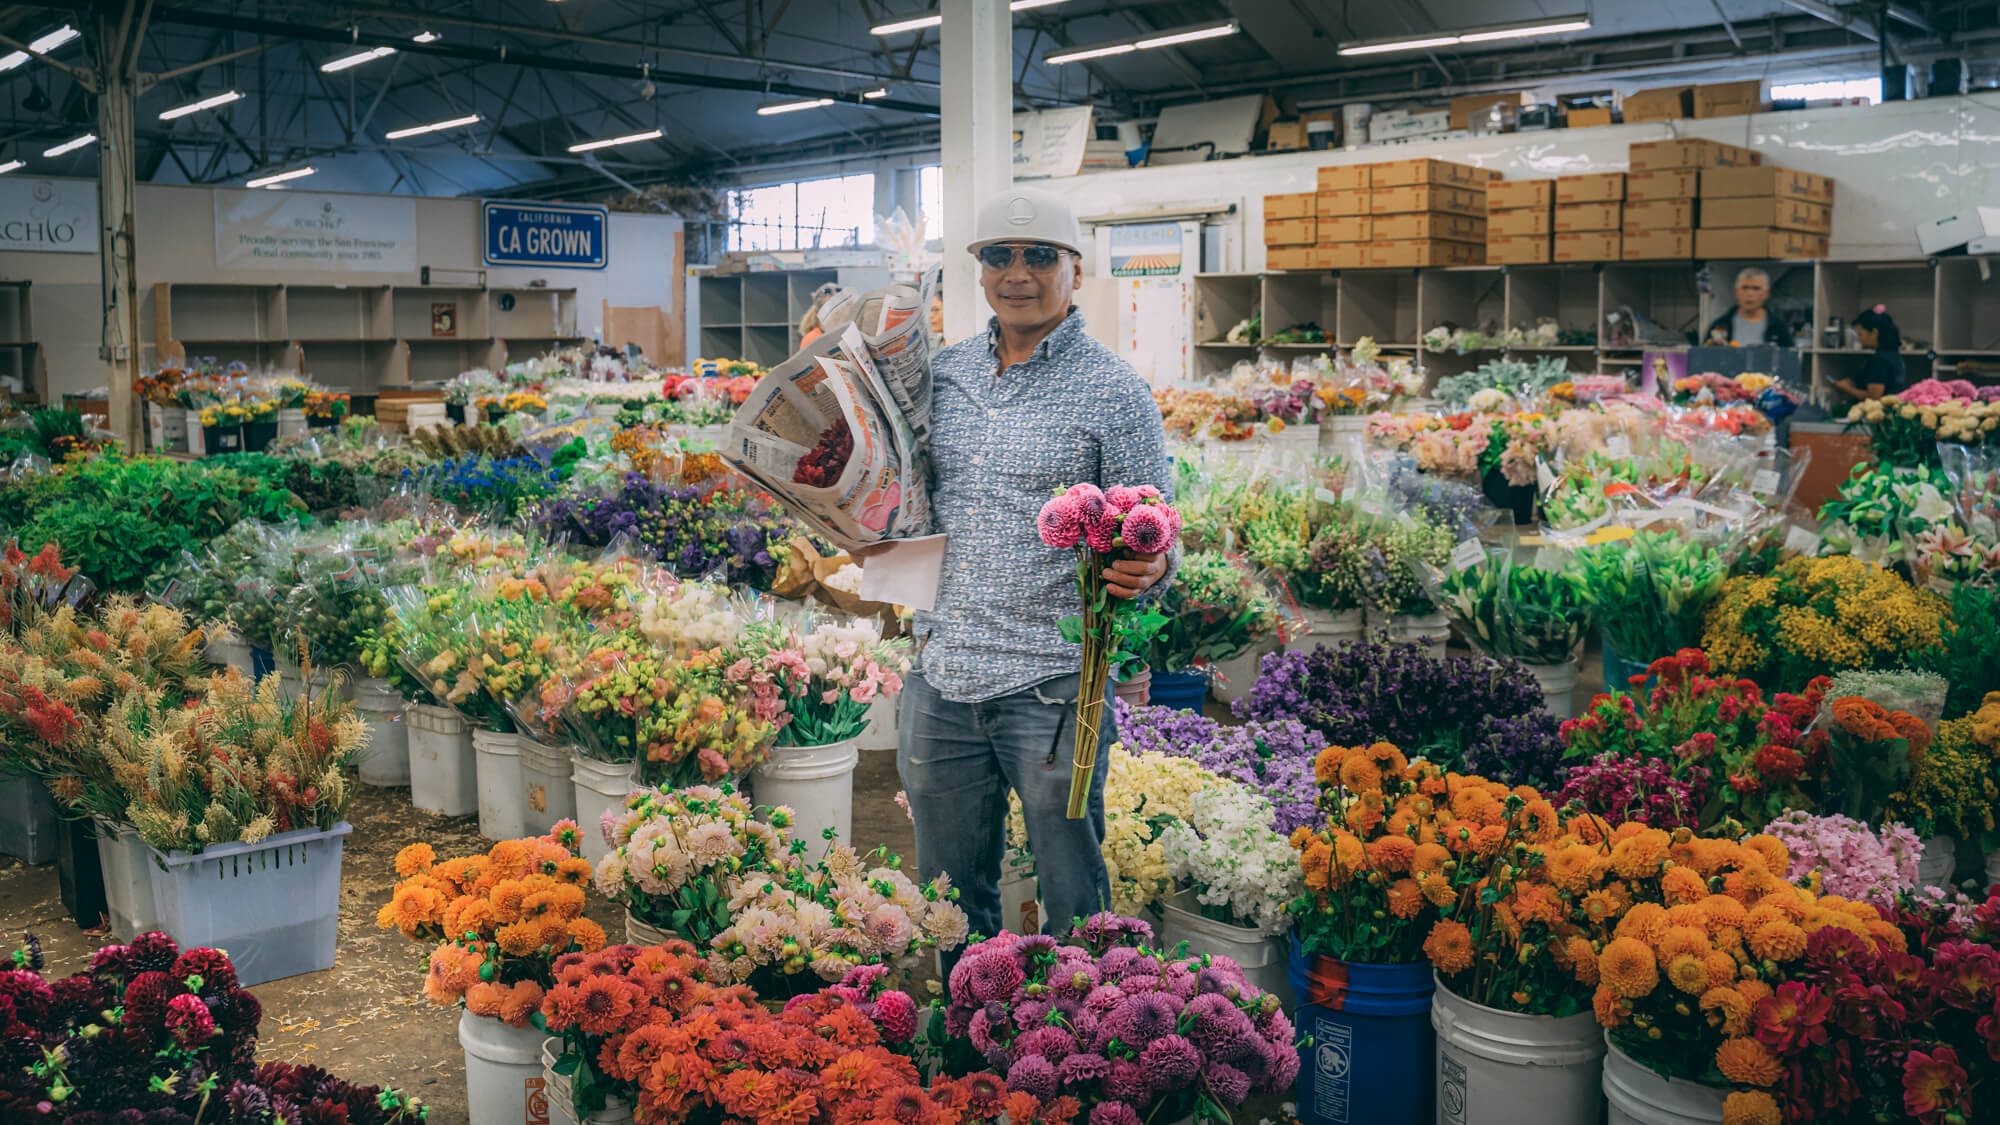 Episode 21: The Flower Influencer - Jun Piñon